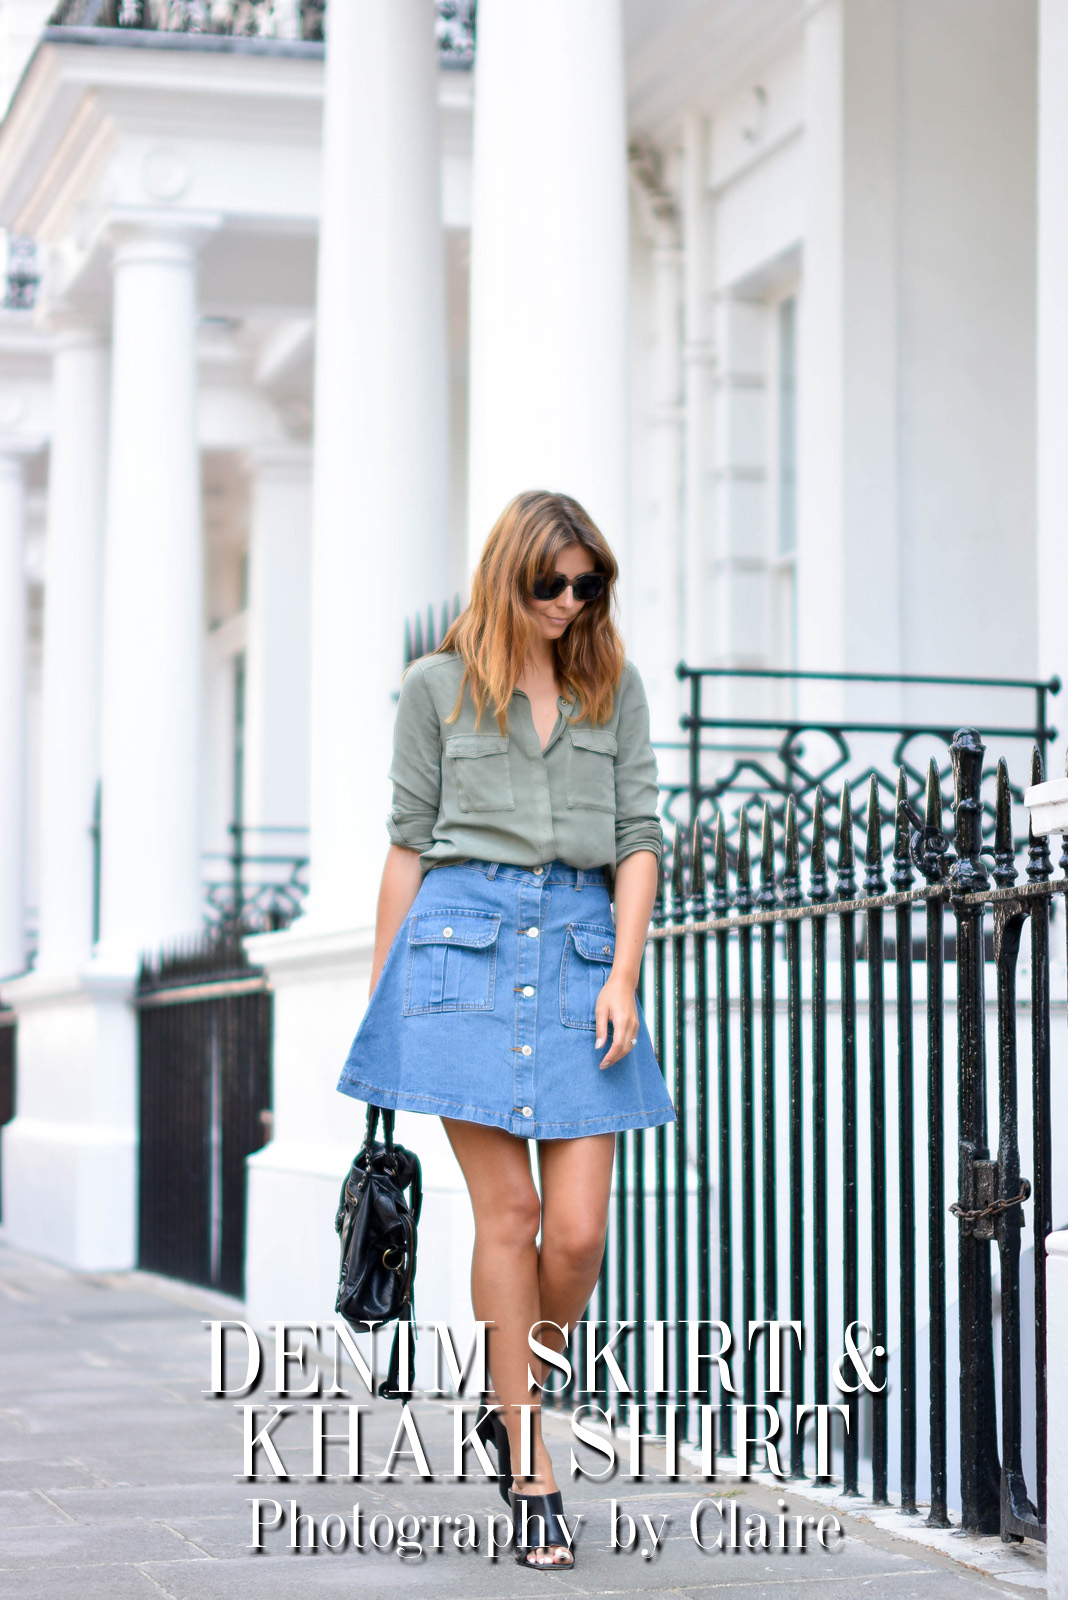 EJSTYLE - Emma Hill wears button up denim skirt with pockets with a khaki shirt, Balenciaga bag, black leasthet mules, heels, how to dress for summer, OOTD, title